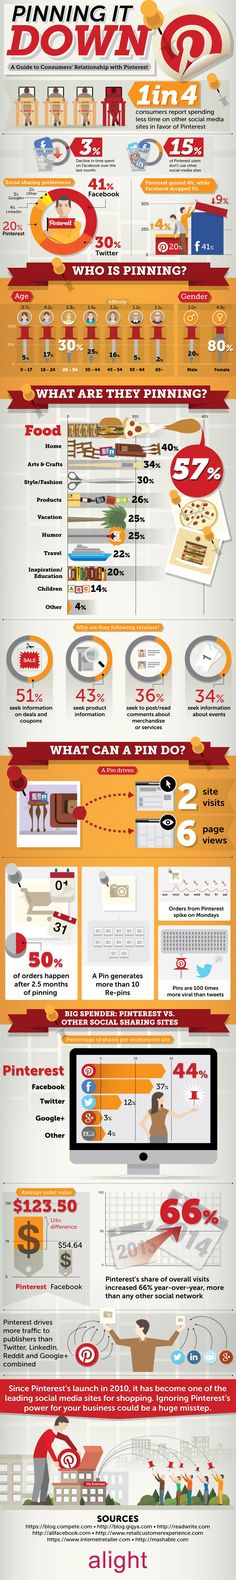 A Guide to Consumers' Relationship with Pinterest #infographic